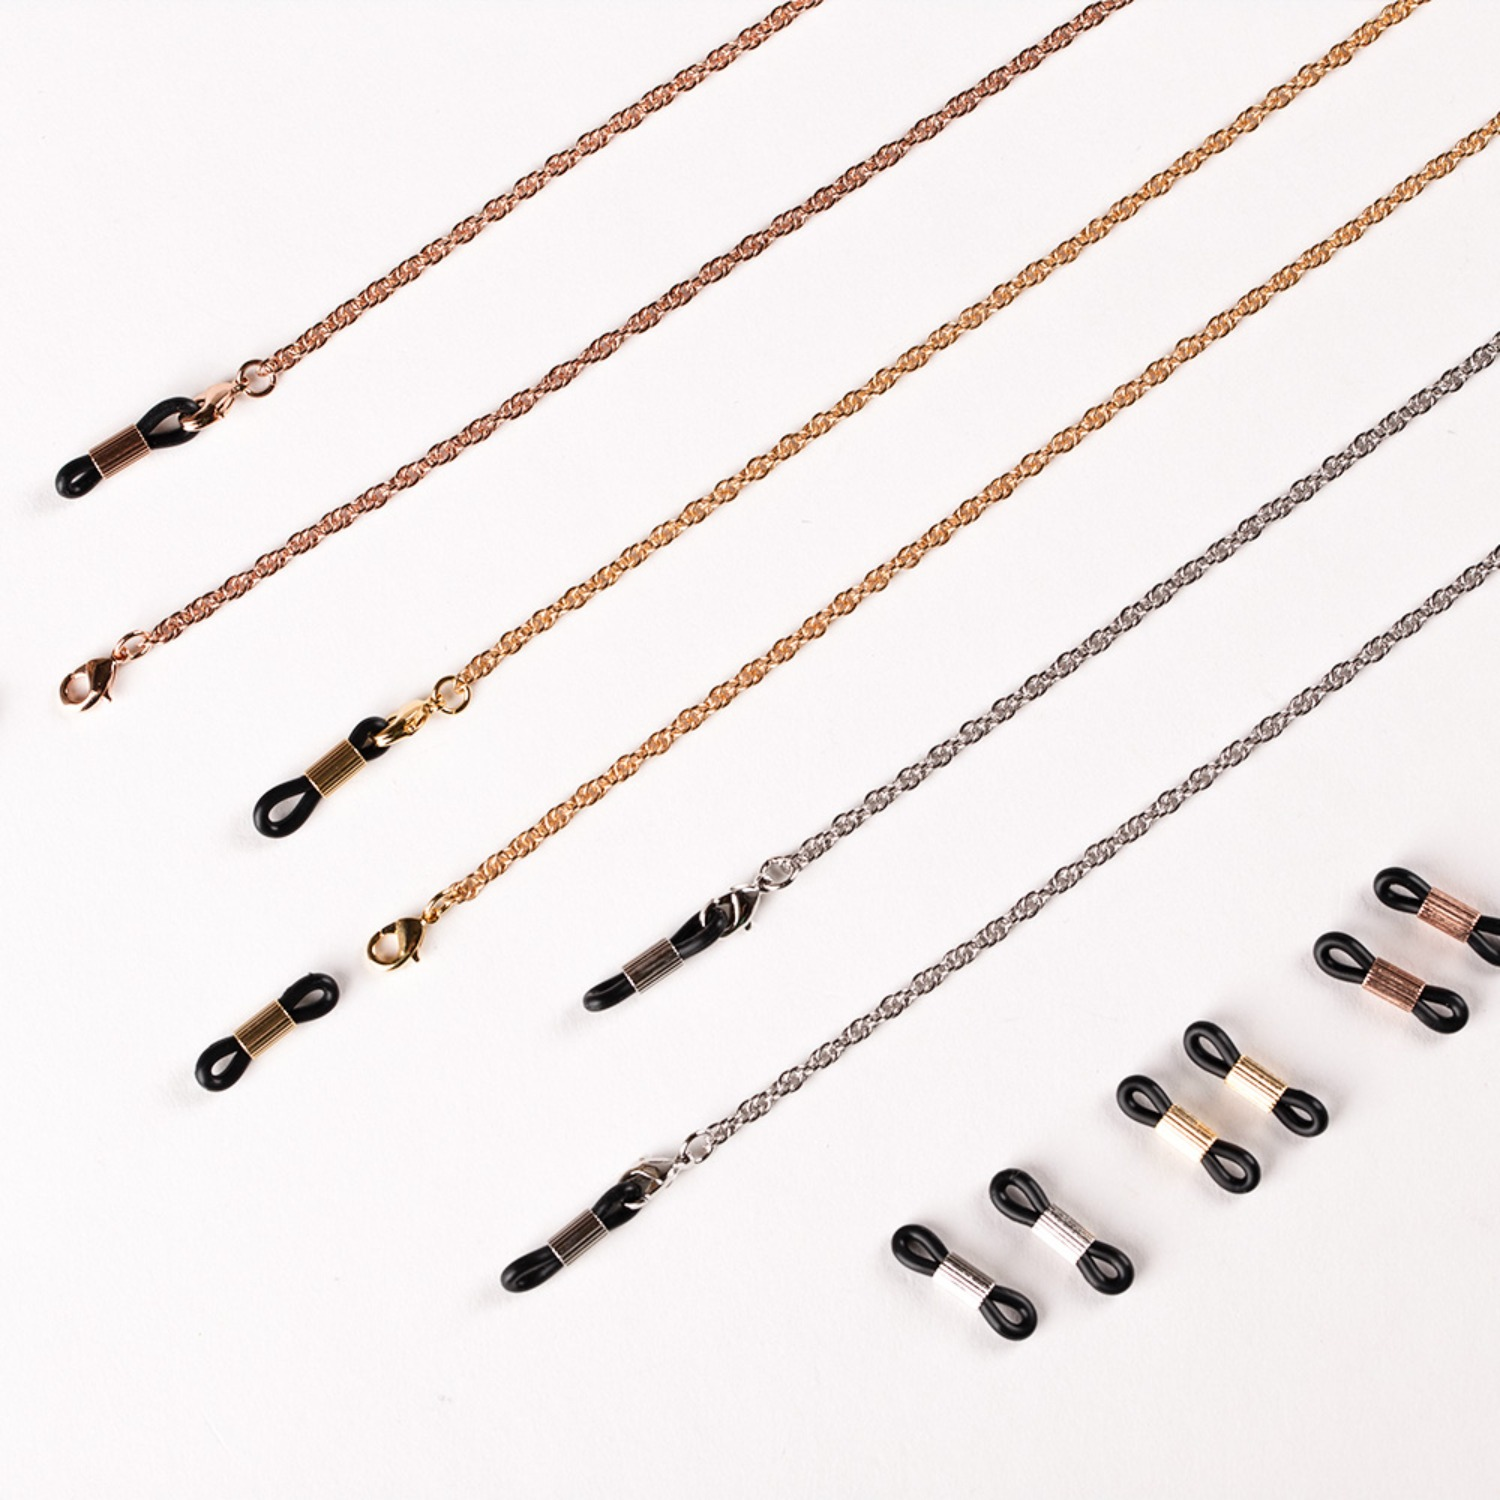 Twits chain _ 3color (Gold / Silver / Rosegold)